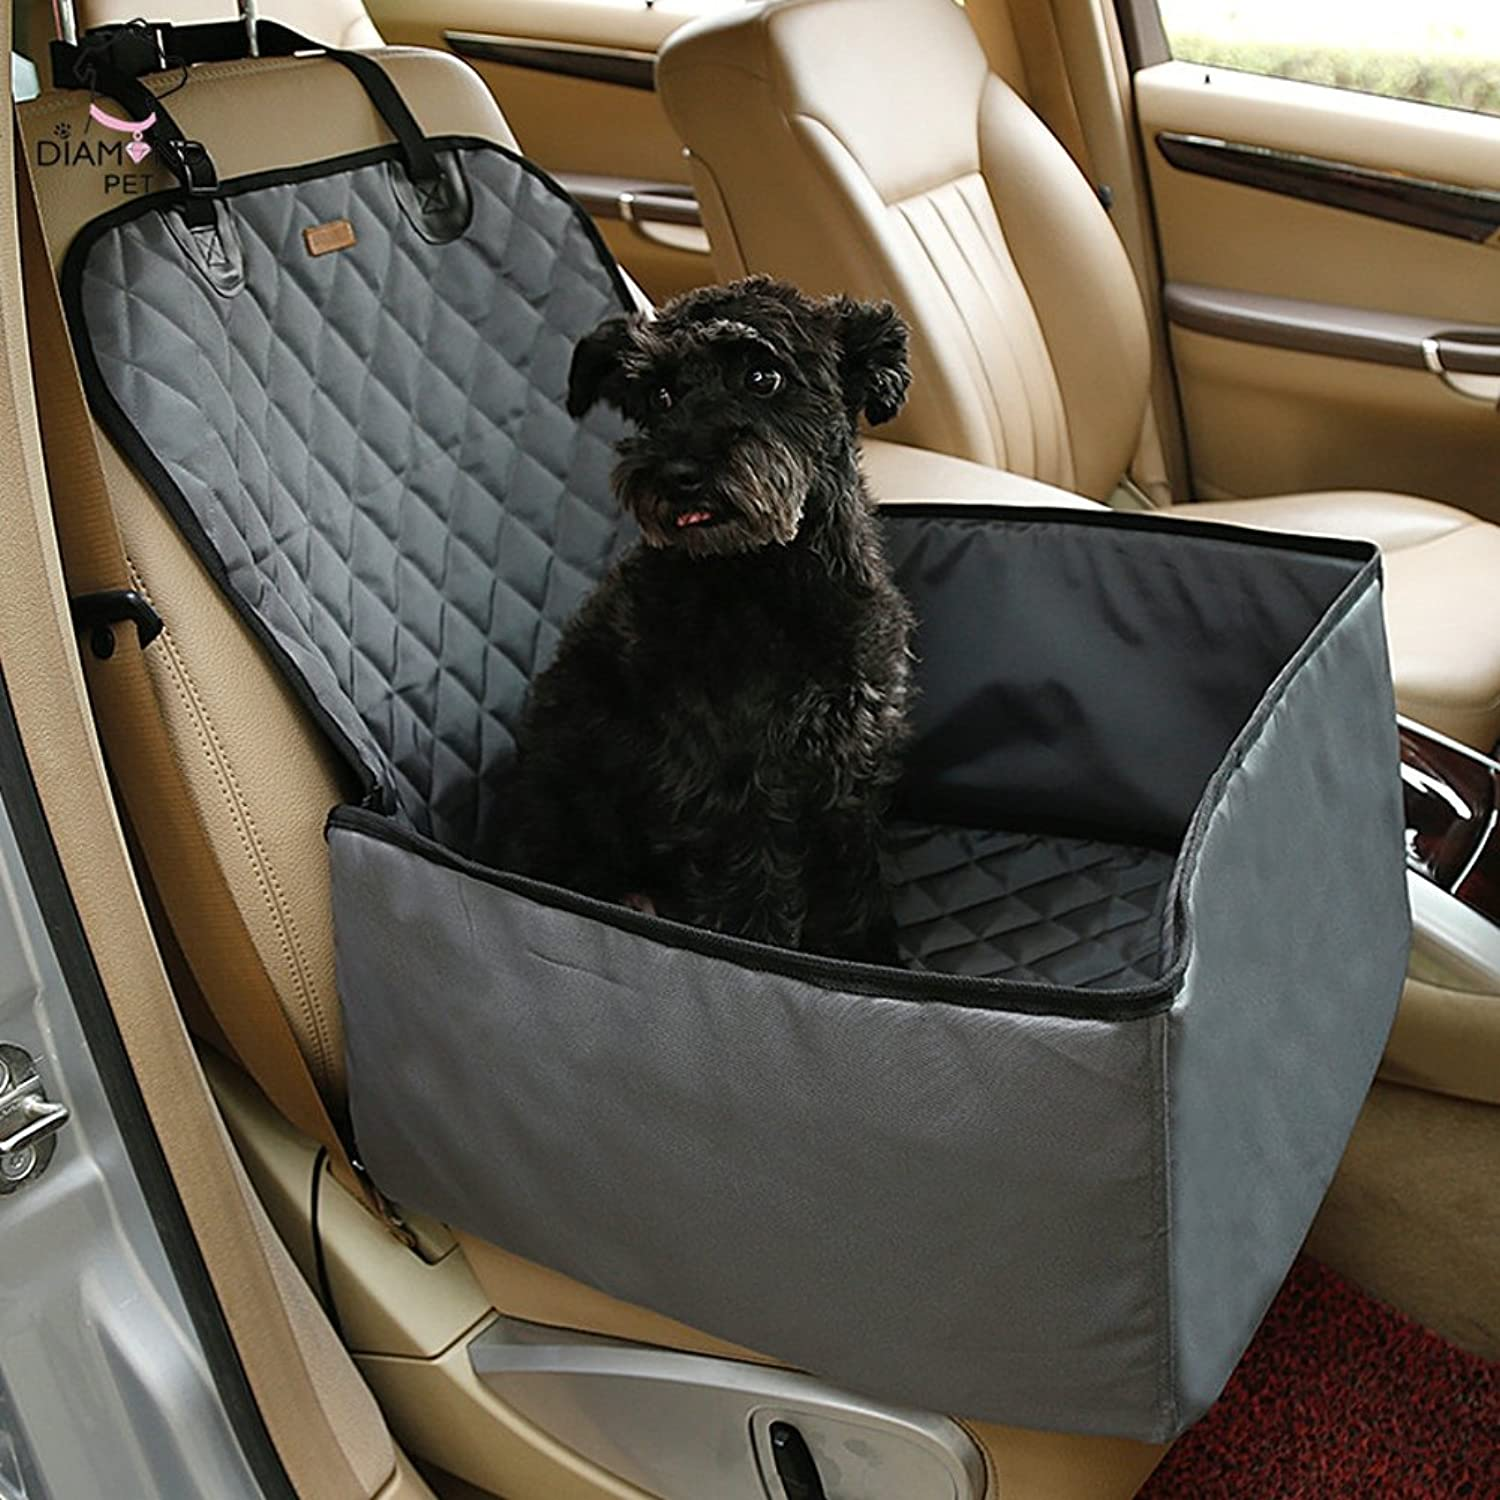 Elfjoy 2 in 1 Deluxe Pet Front Seat Cover for Cars Waterproof Oxford Bucket Booster Seat (Grey)